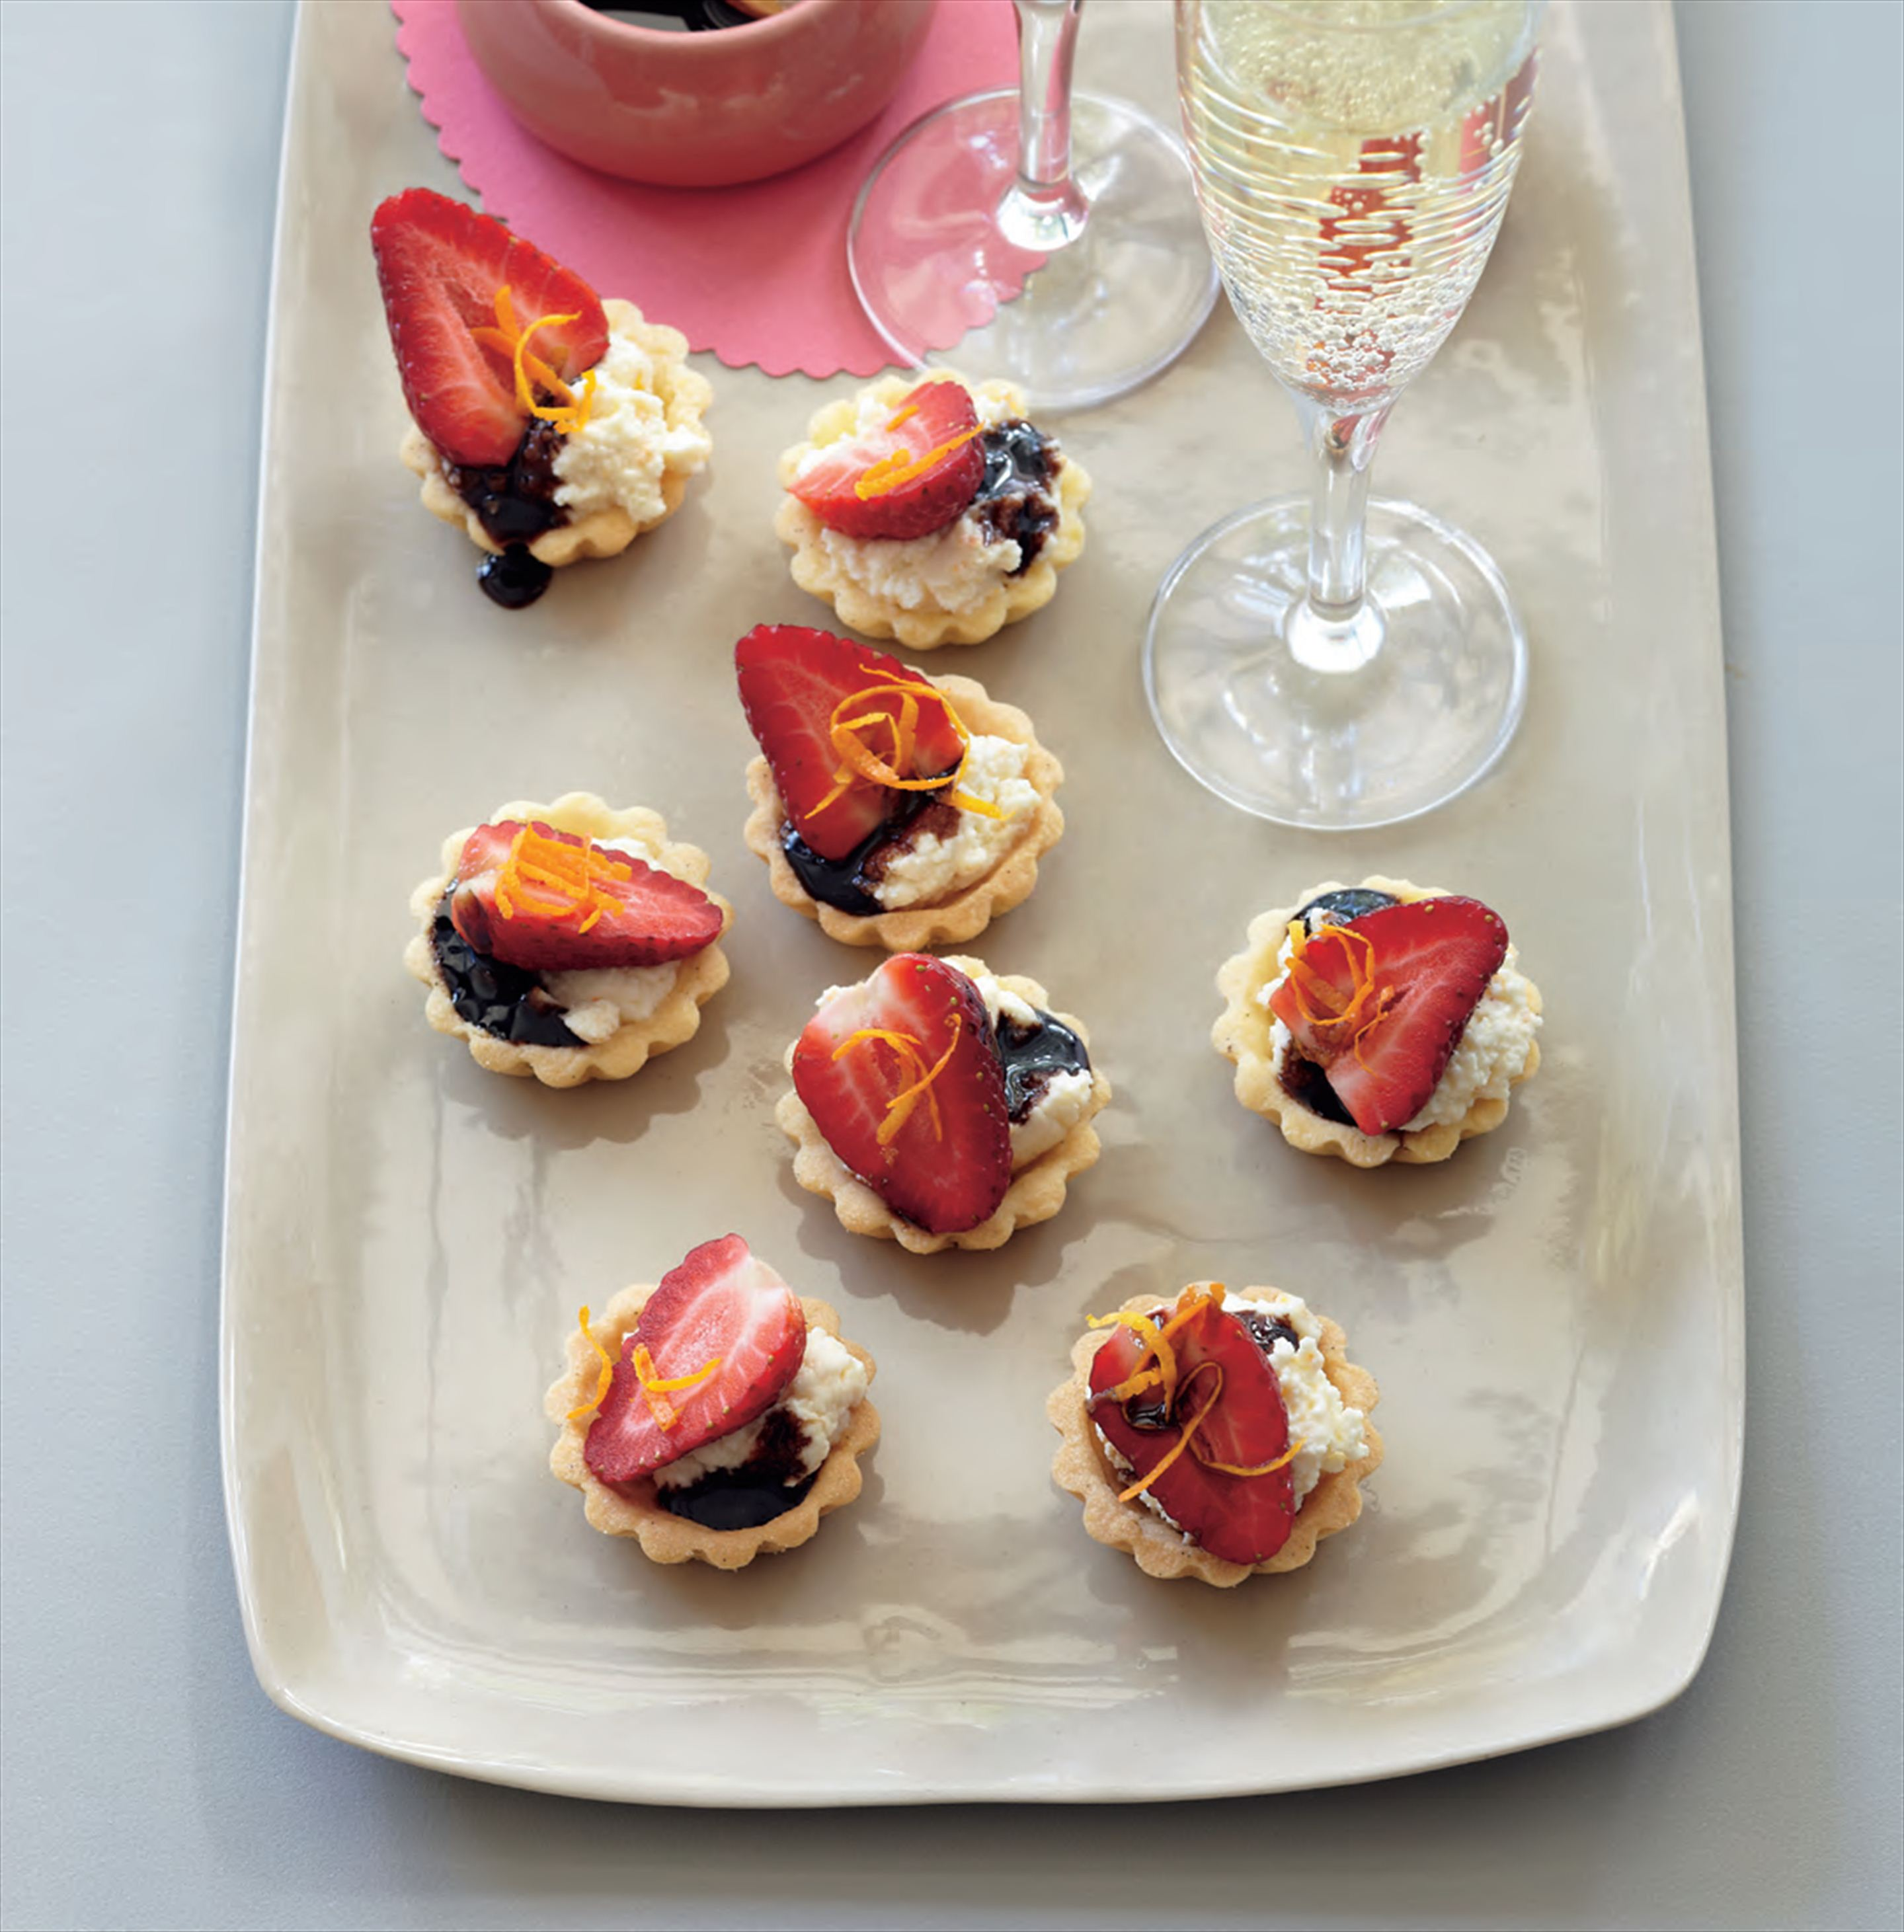 Strawberry tartlets with sticky balsamic glaze